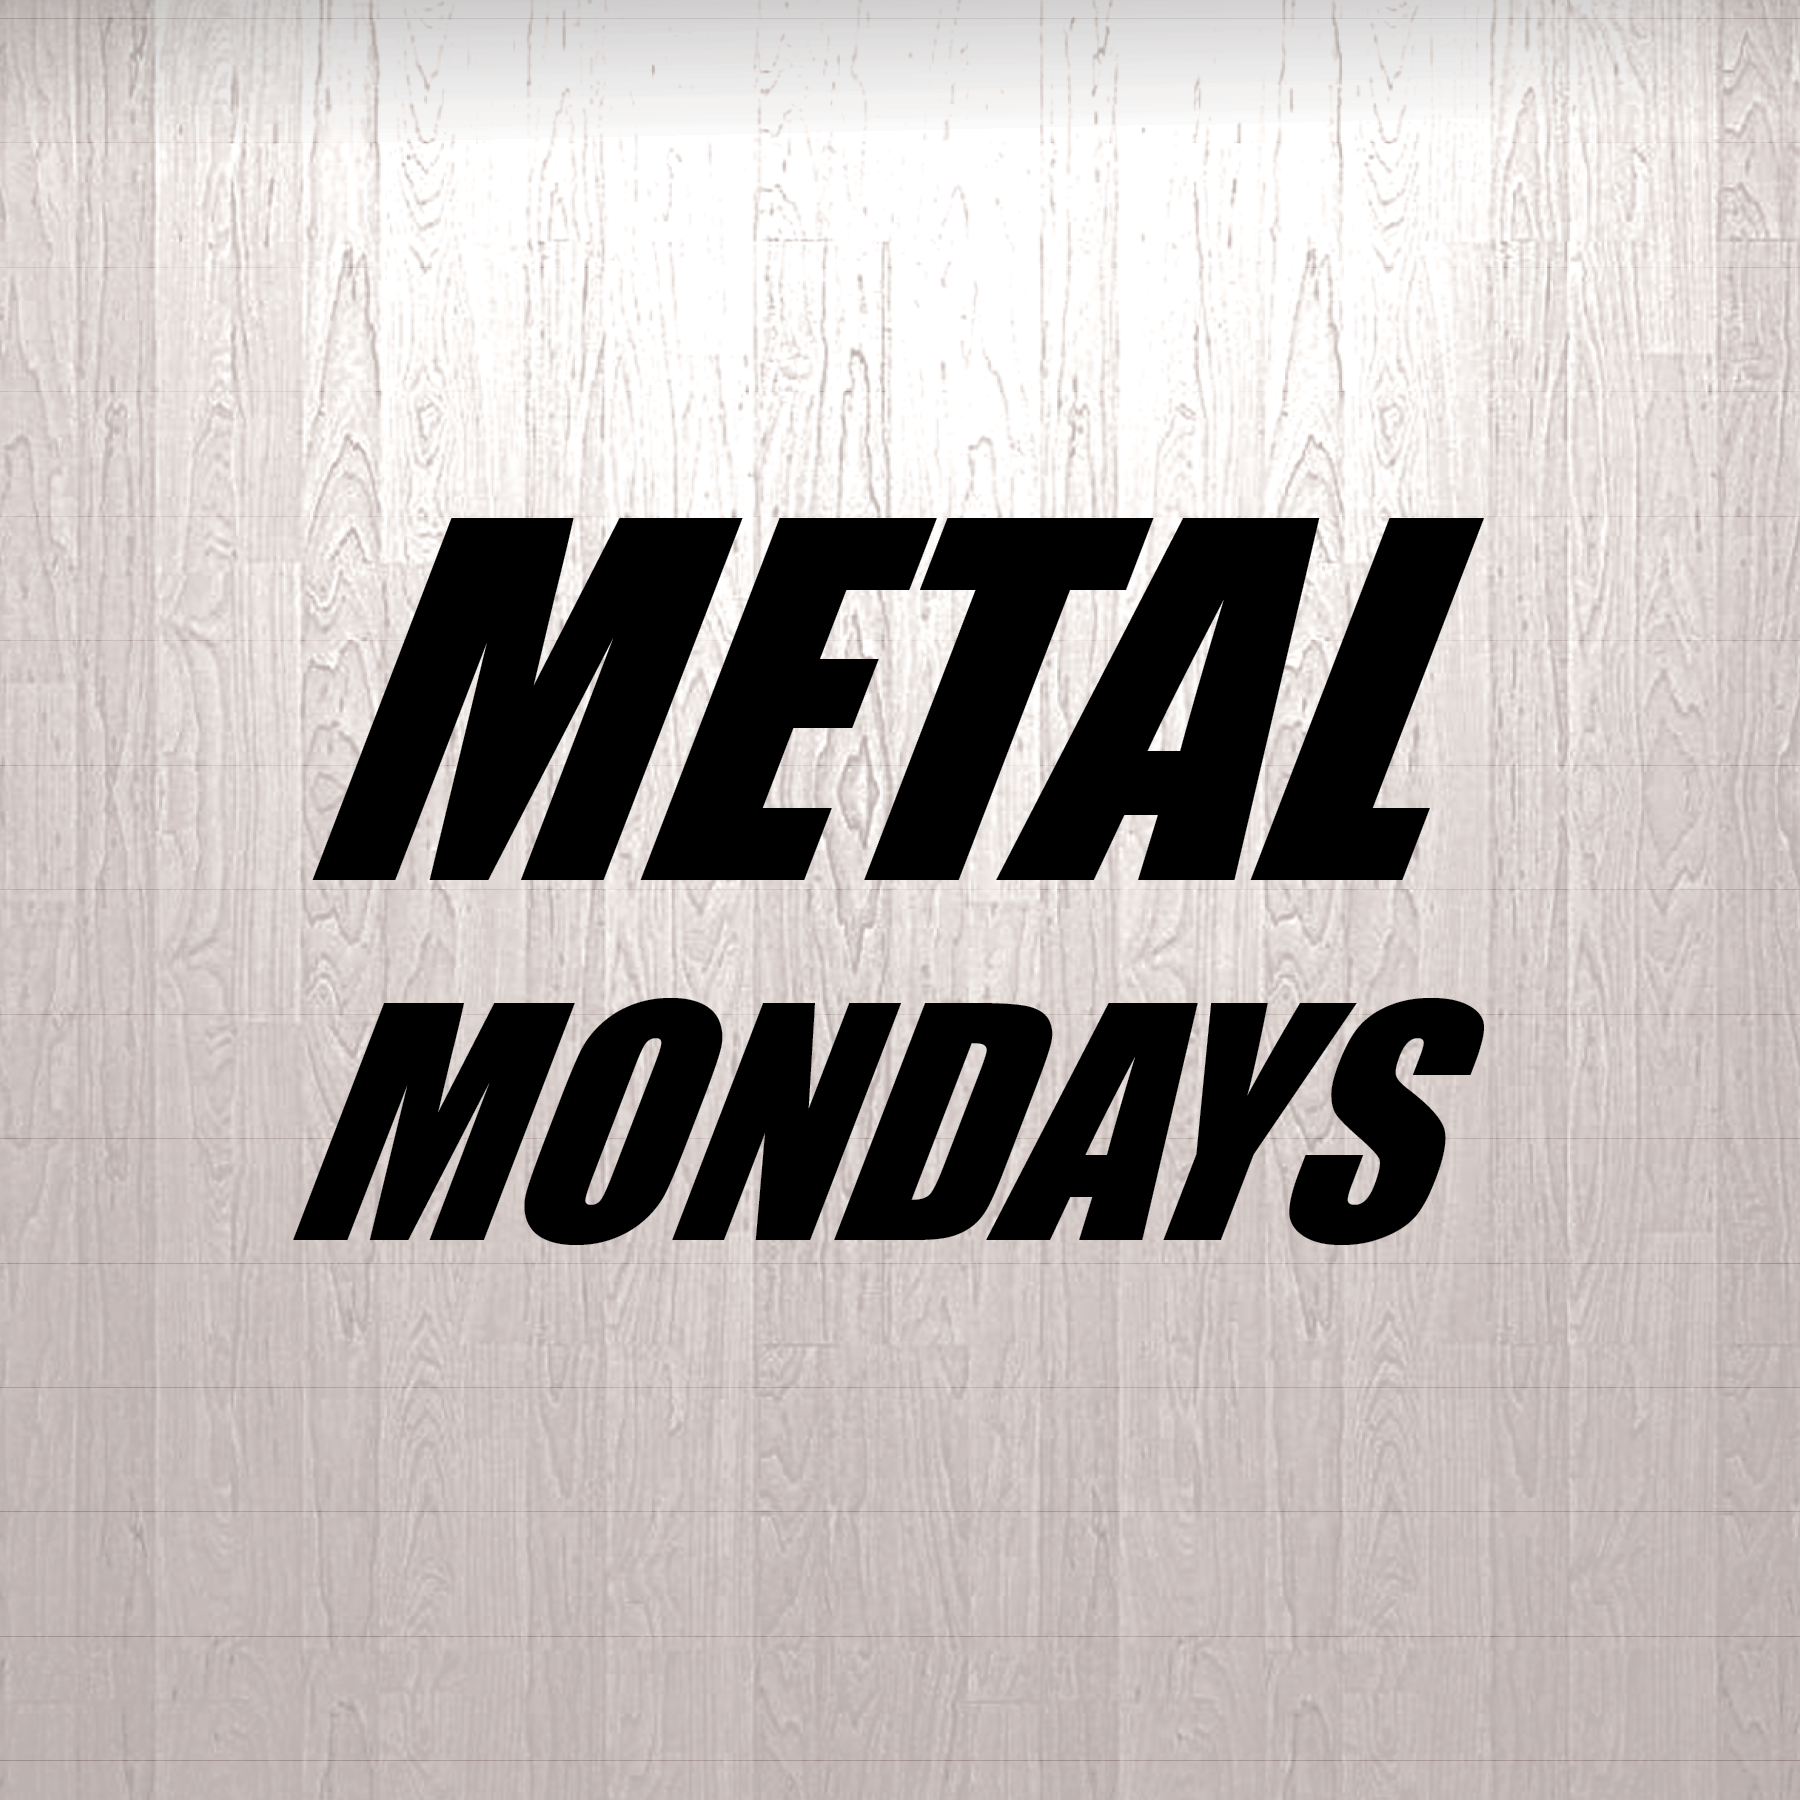 Metal Mondays 9:00 PM - Close